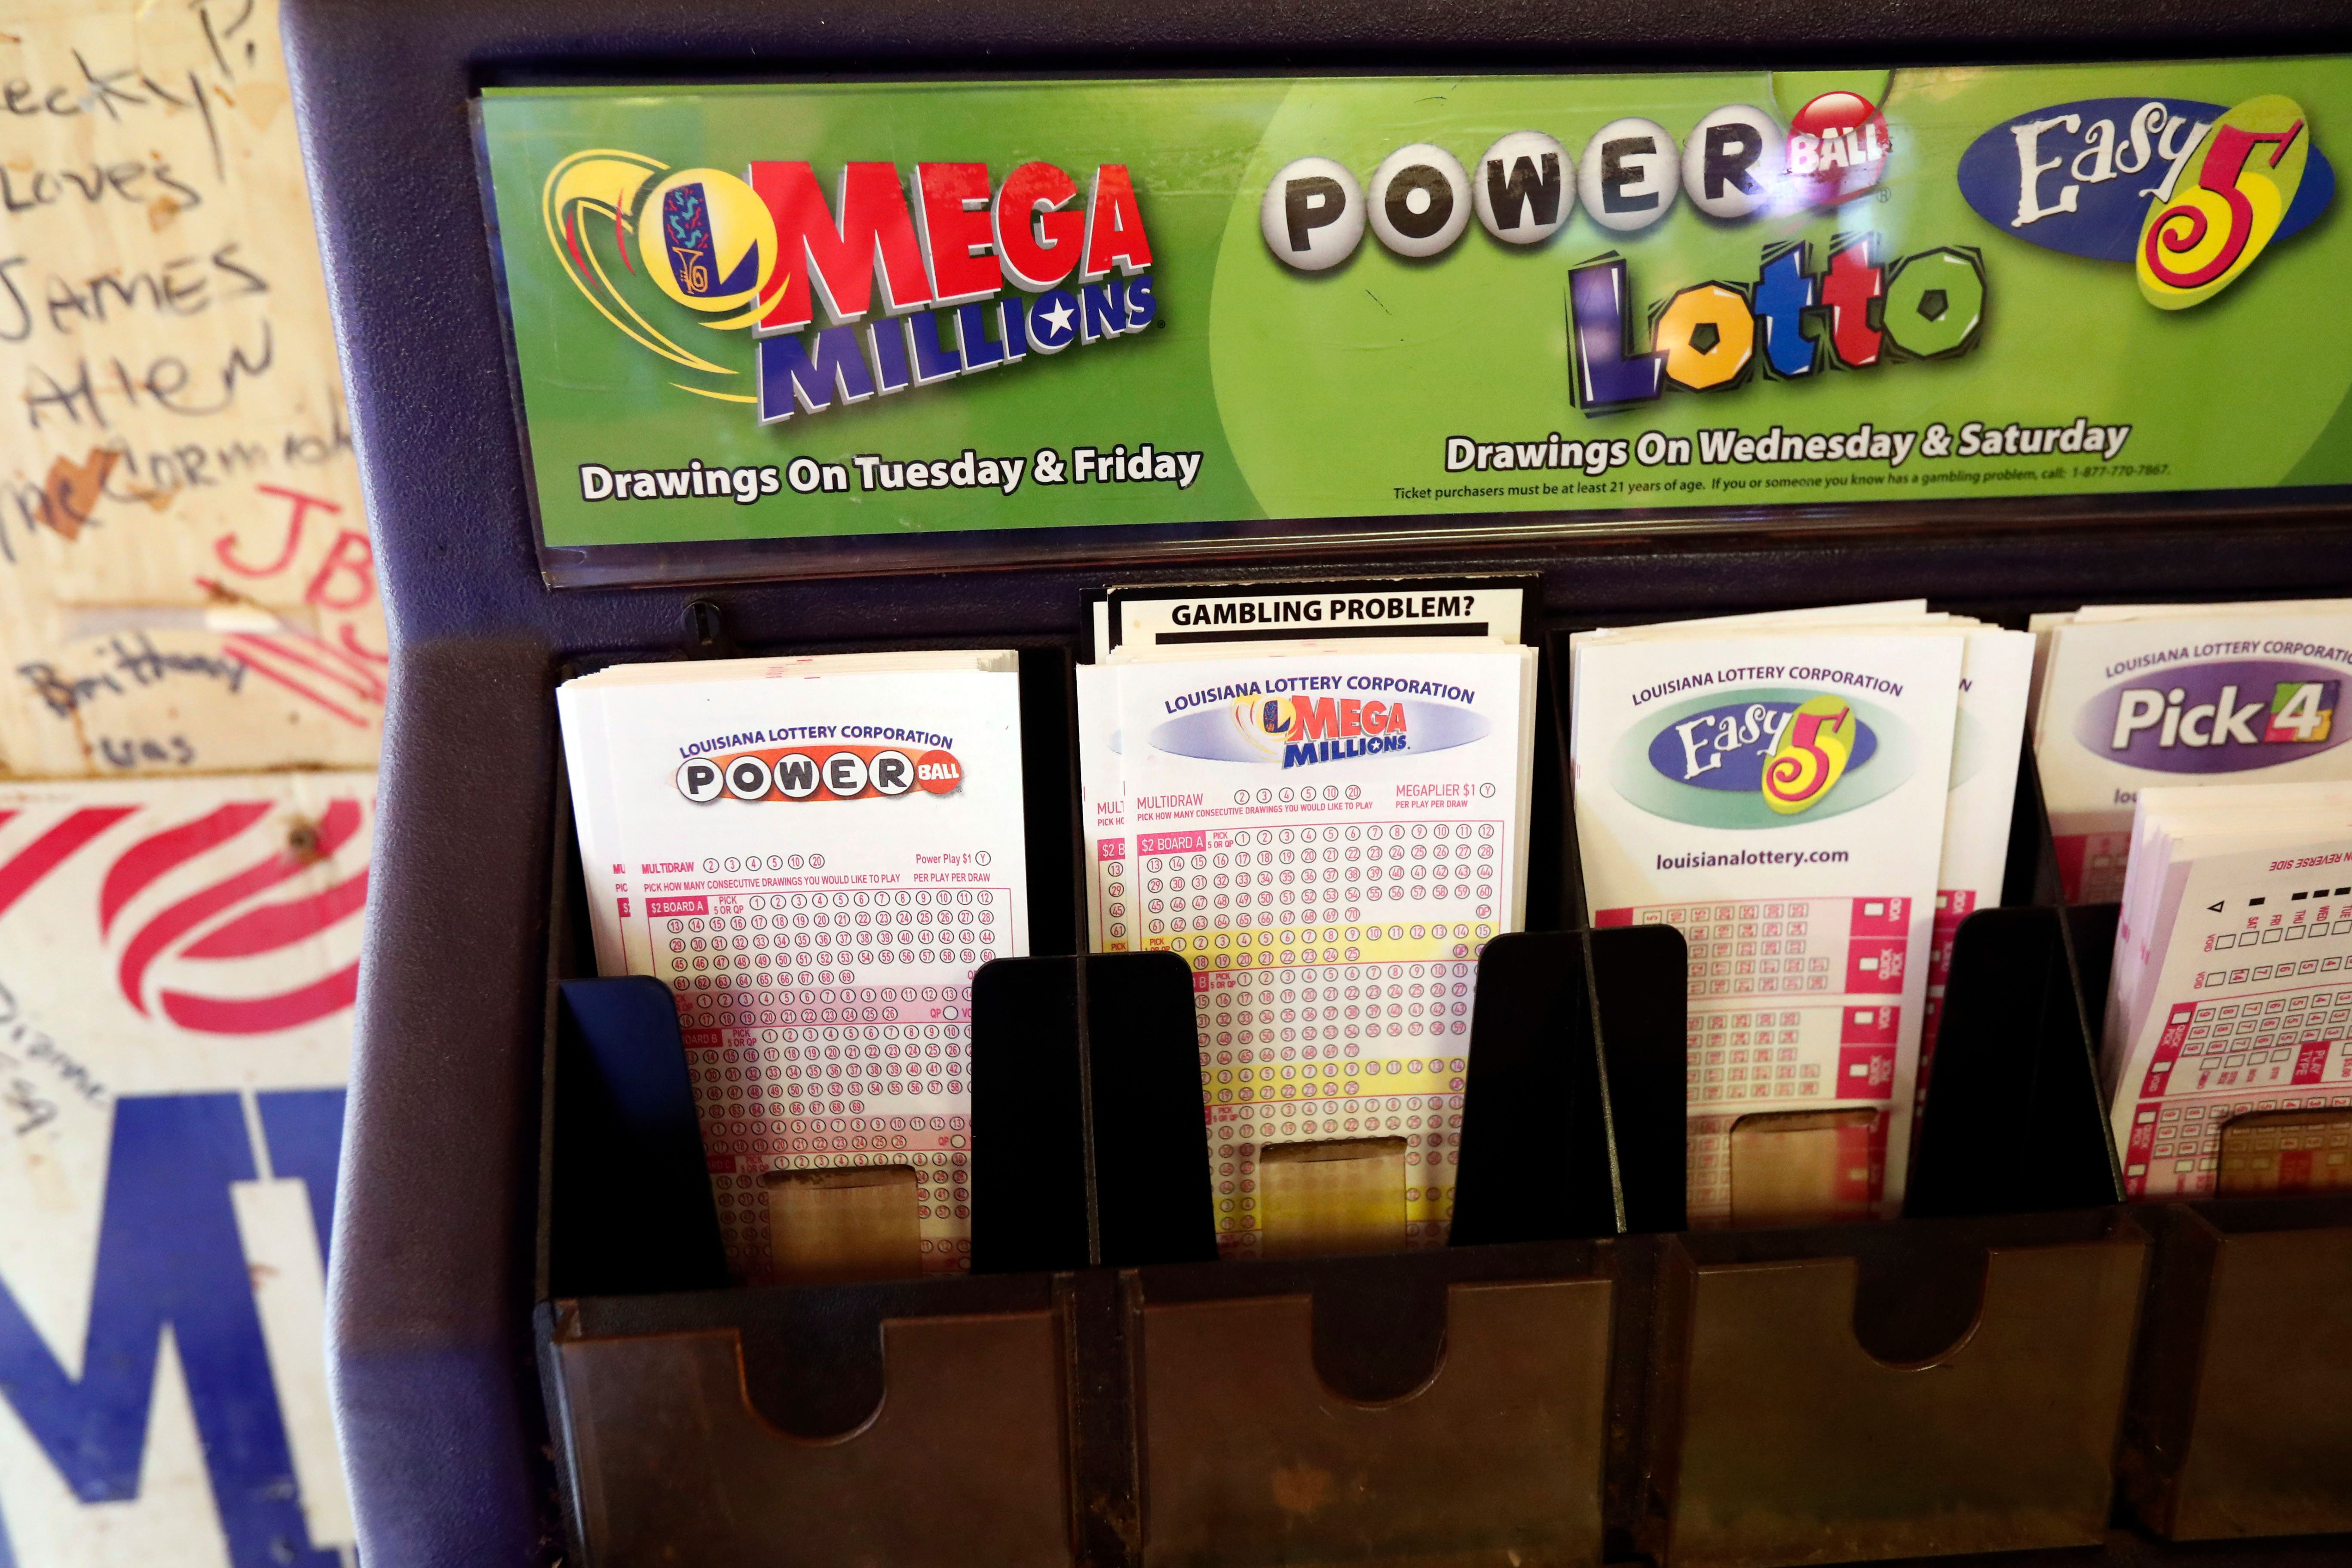 Did <i>you</i> win that $1.5 billion in the lottery?